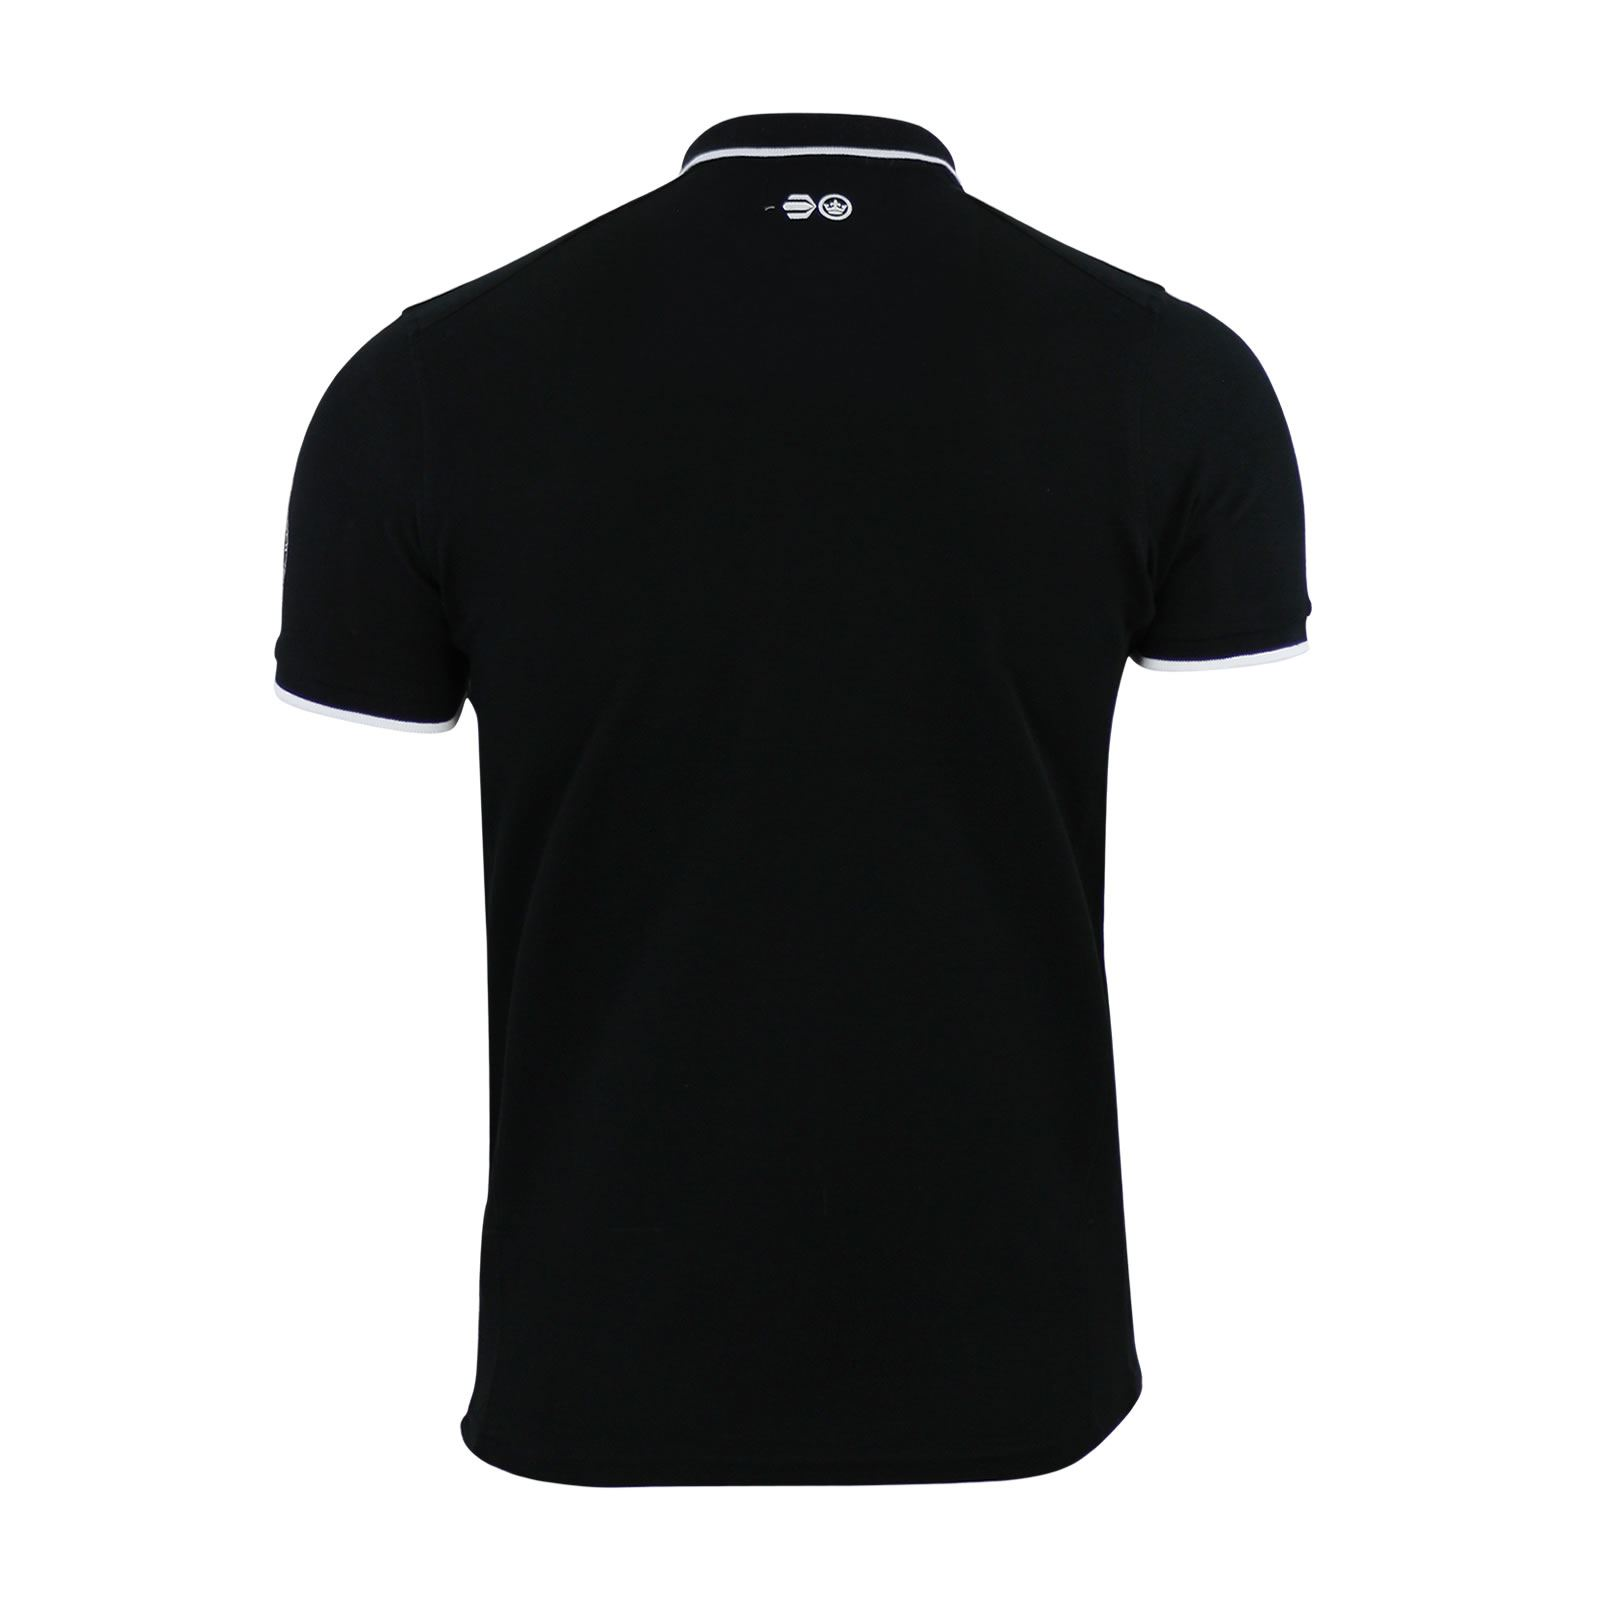 Mens-Polo-T-Shirt-Crosshatch-Pinback-Collared-Cotton-Short-Sleeve-Casual-Top